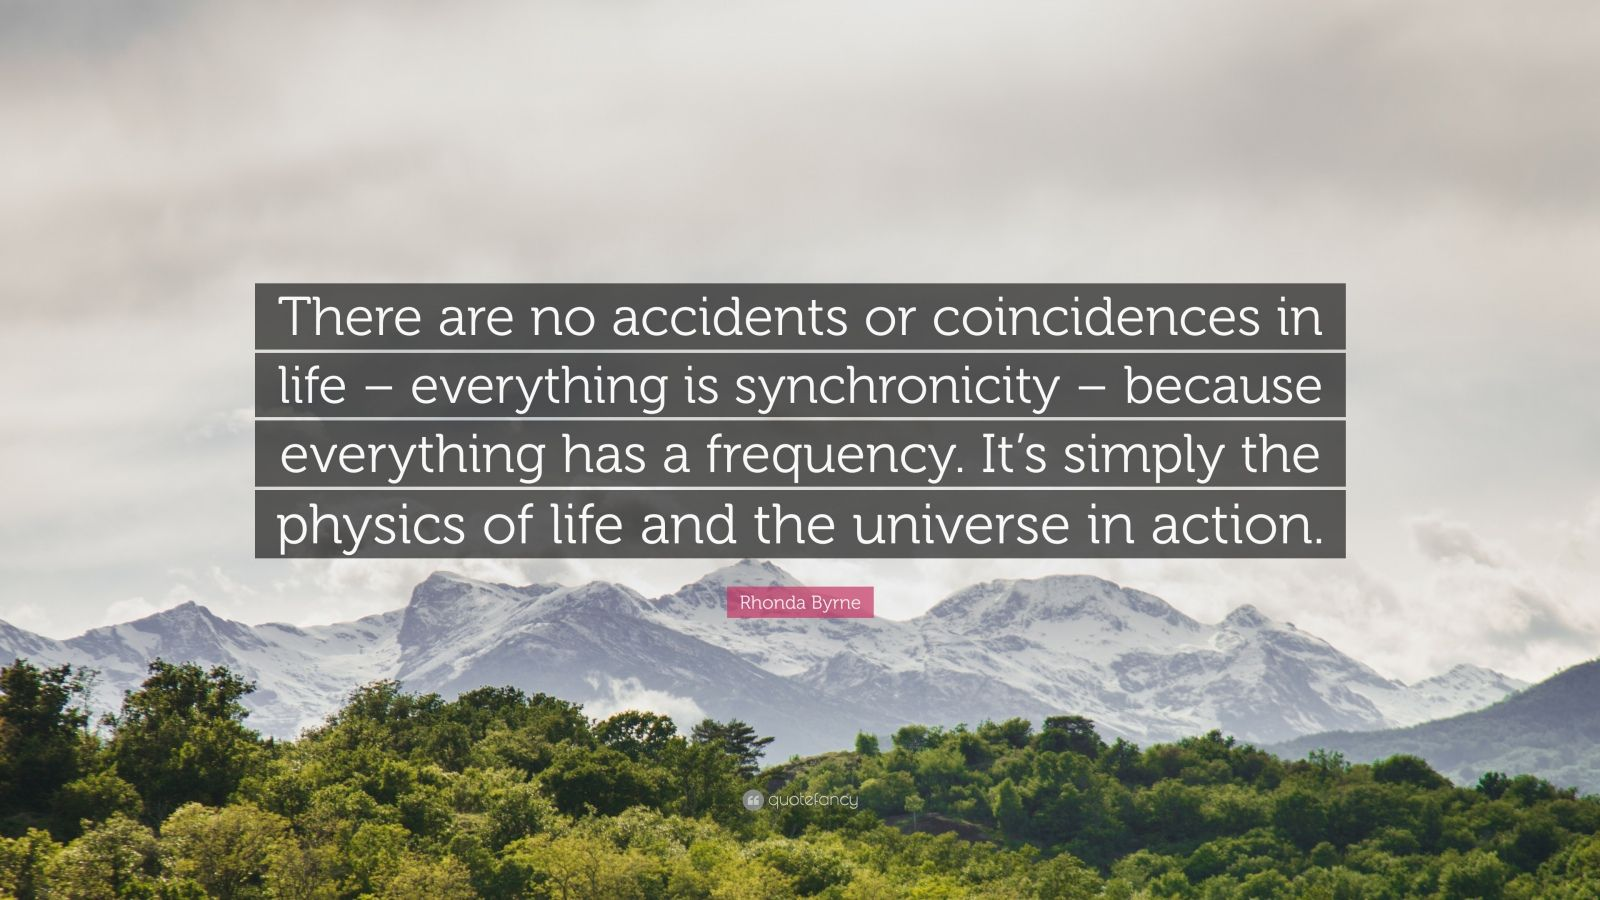 """Rhonda Byrne Quote: """"There are no accidents or coincidences in life – everything is synchronicity – because everything has a frequency. It's simply the physics of life and the universe in action."""""""